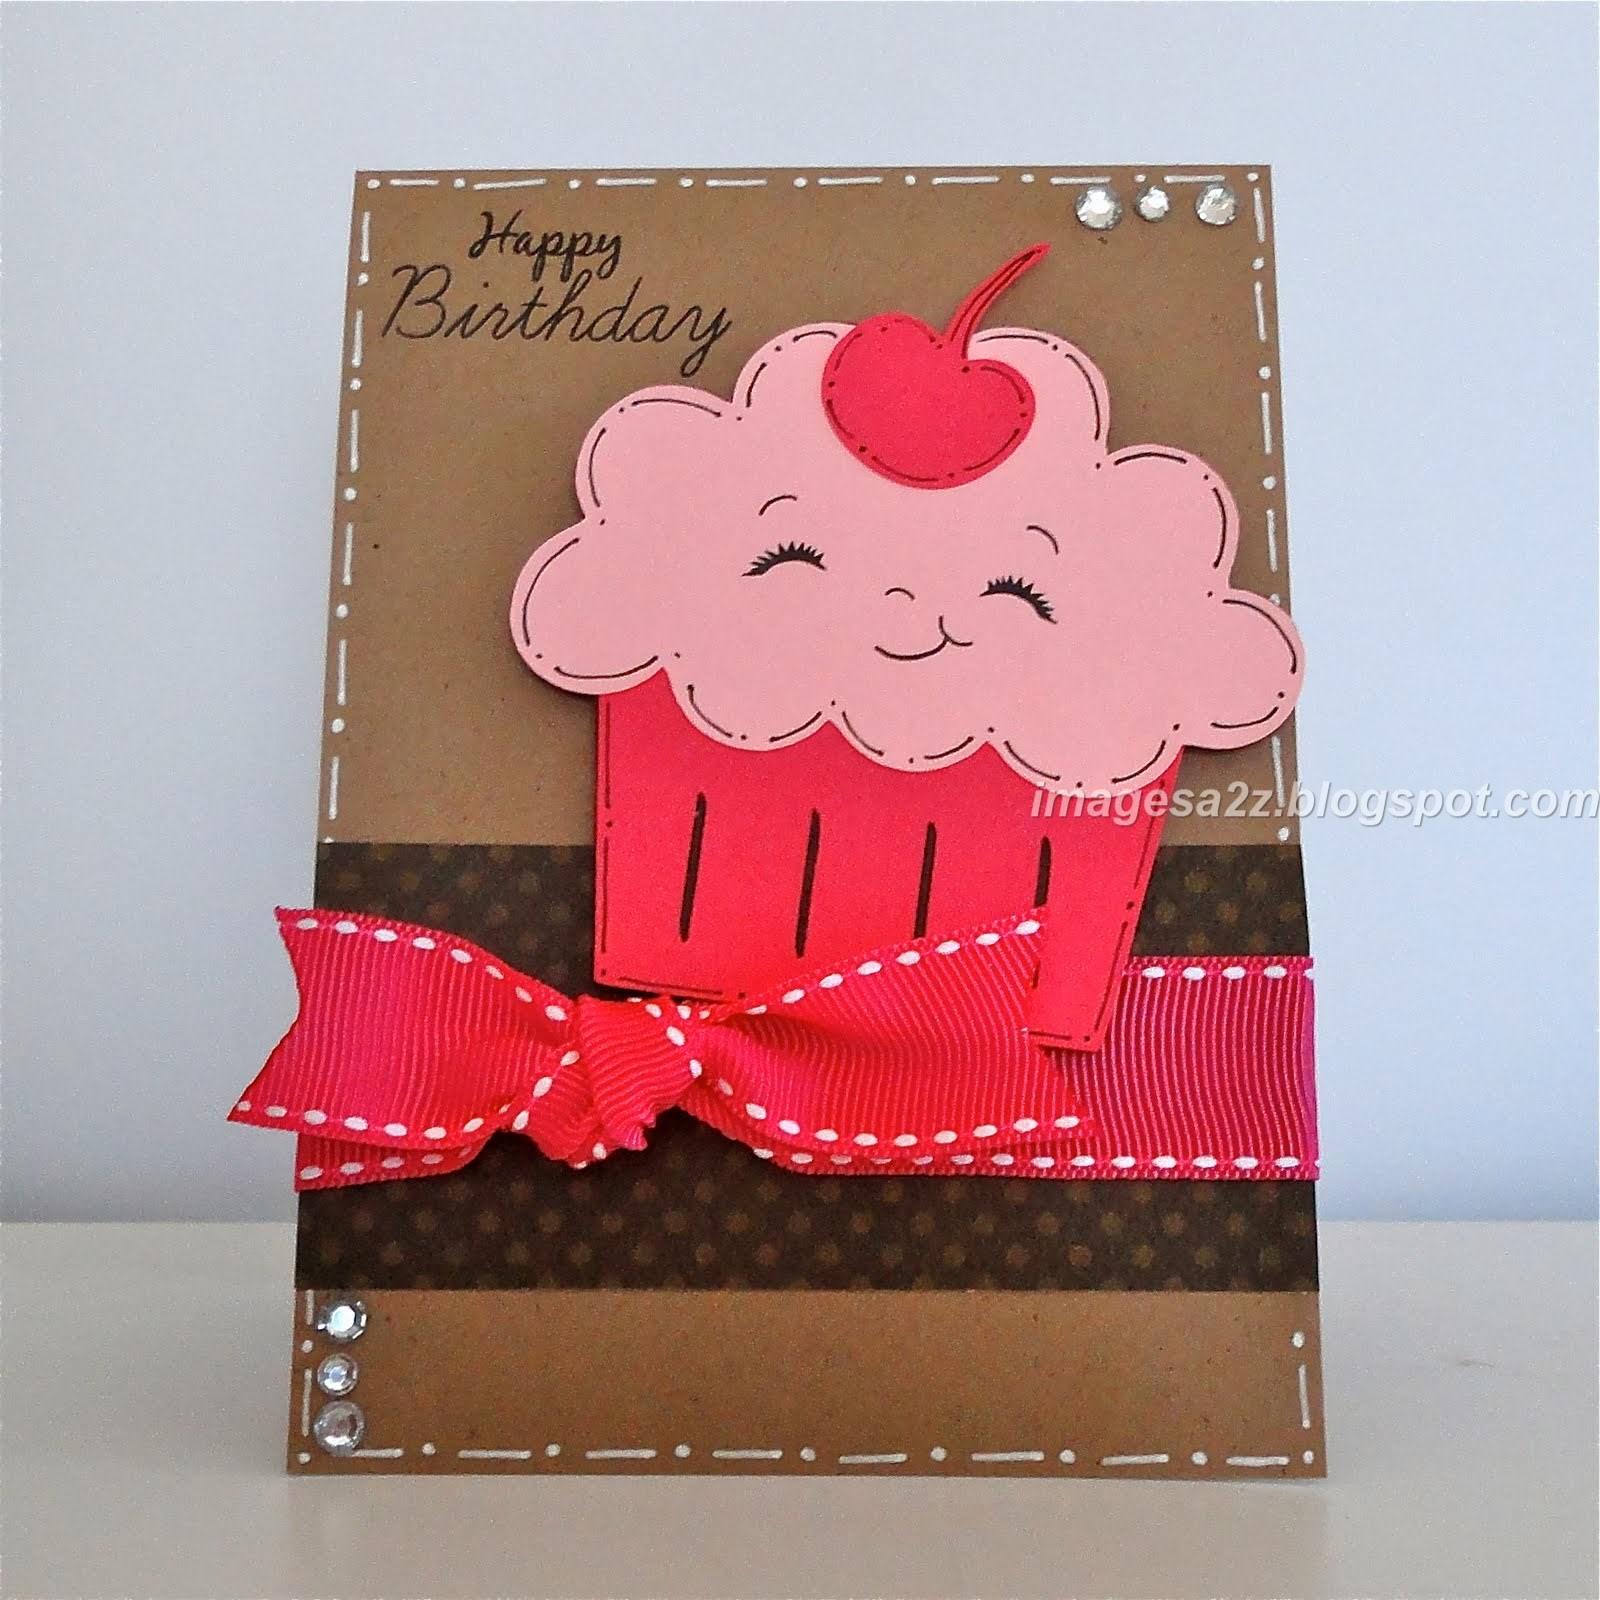 Creative Ideas For Making Cards Part - 27: Making Cards At Home Ideas